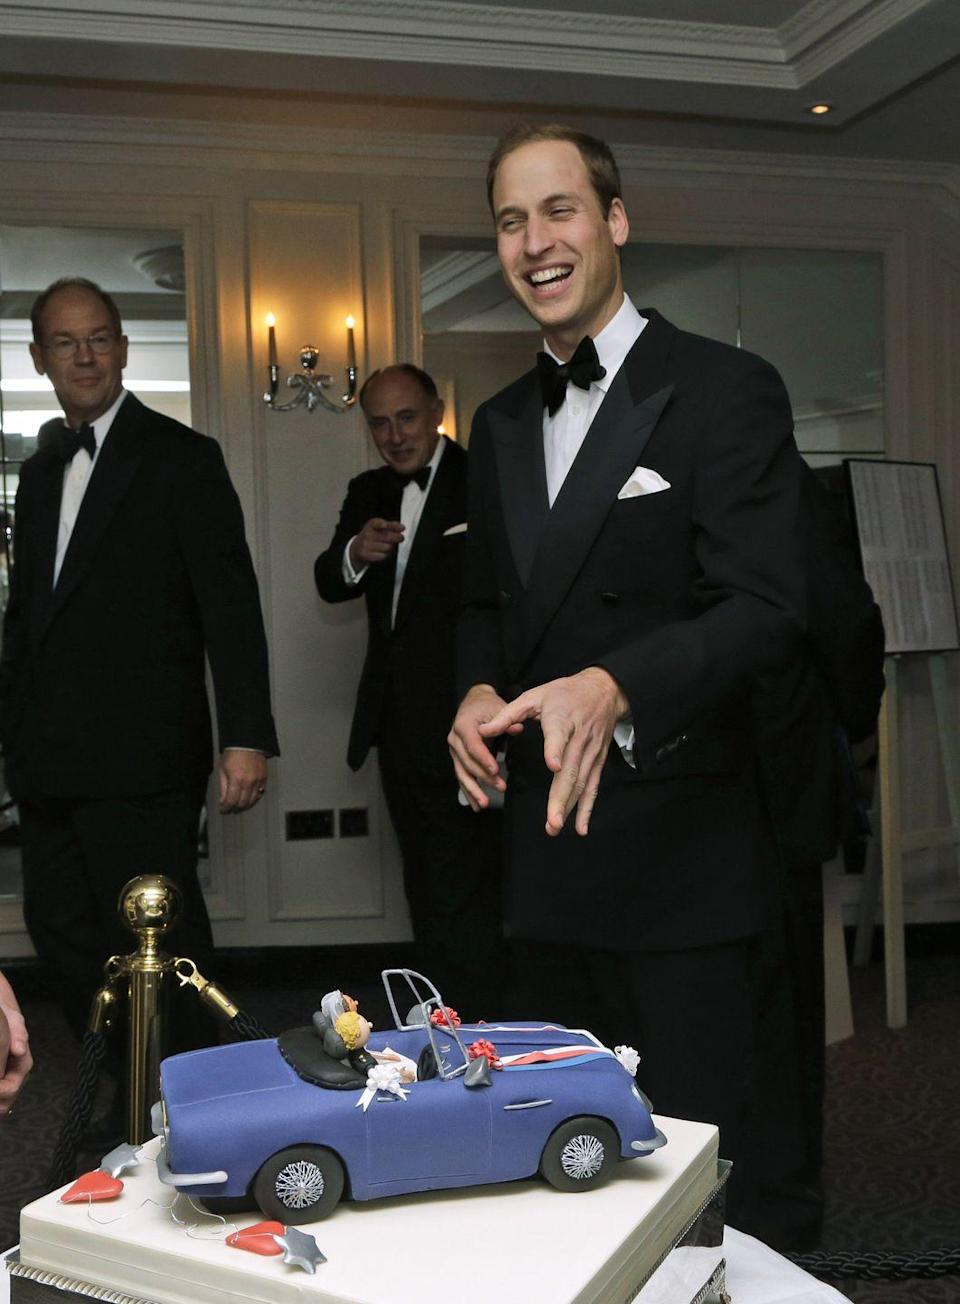 <p>Prince William laughed when he noticed a special cake, portraying him and Kate driving a convertible after their wedding. </p>